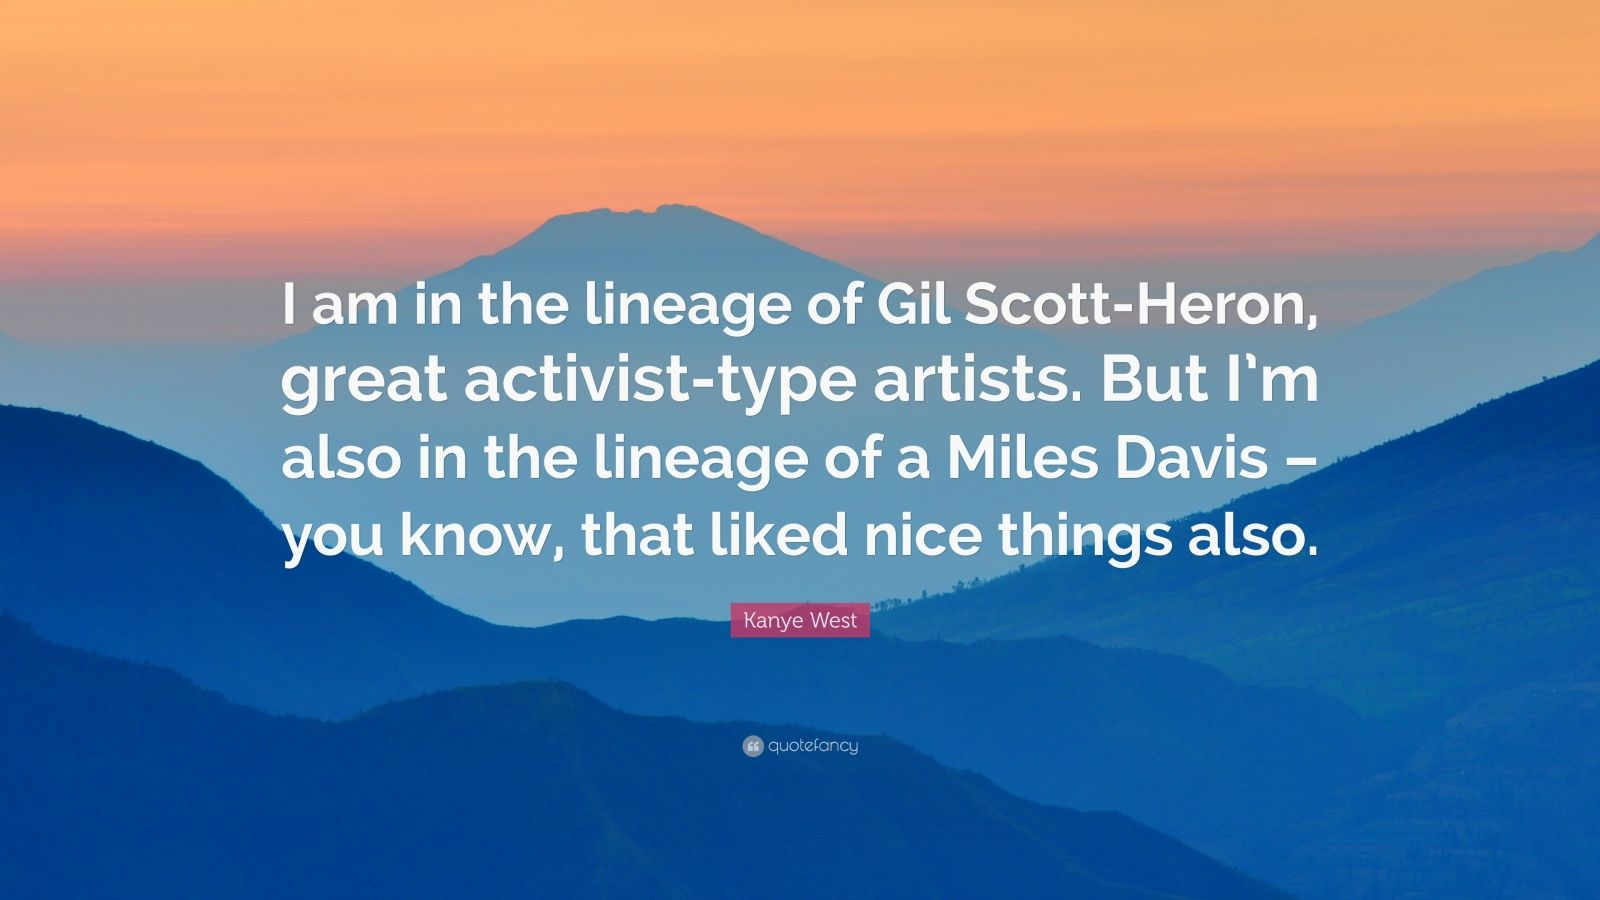 """Kanye West Quote: """"I am in the lineage of Gil Scott-Heron, great activist-type artists. But I'm also in the lineage of a Miles Davis – you know, that liked nice things also."""""""